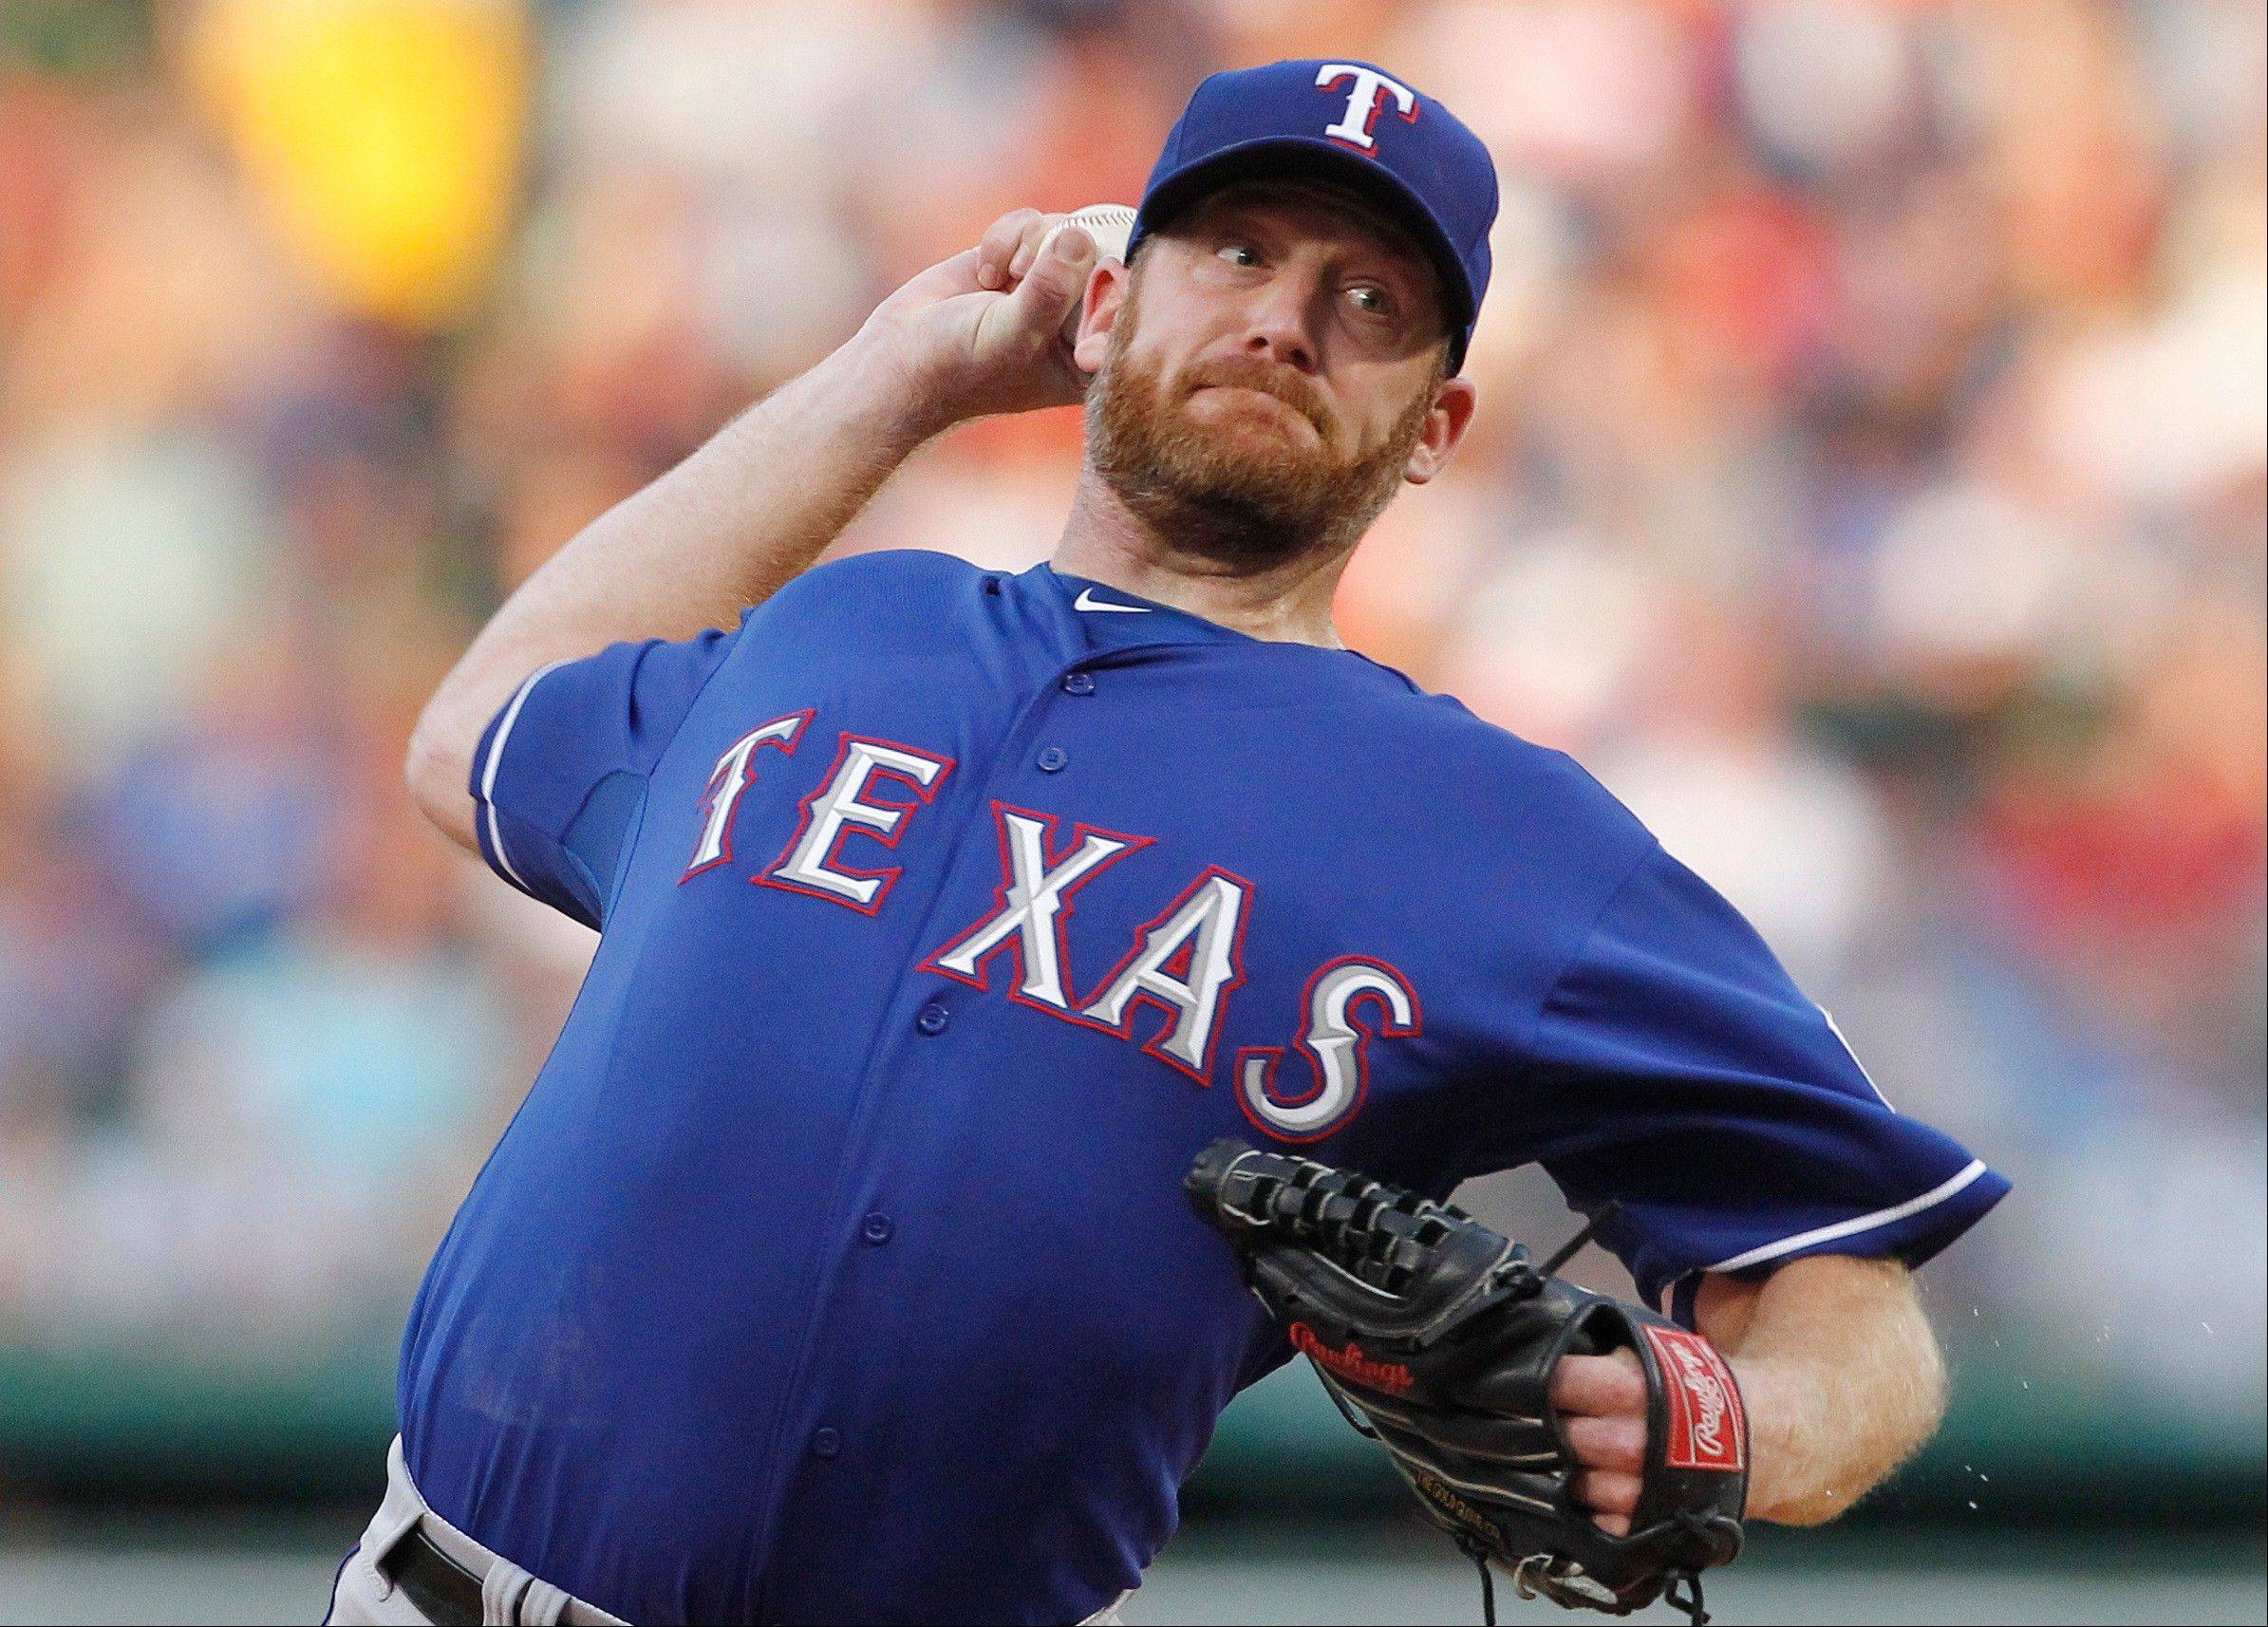 The Rangers' Ryan Dempster struck out six and walked one in 6 2-3 innings Tuesday in Boston.